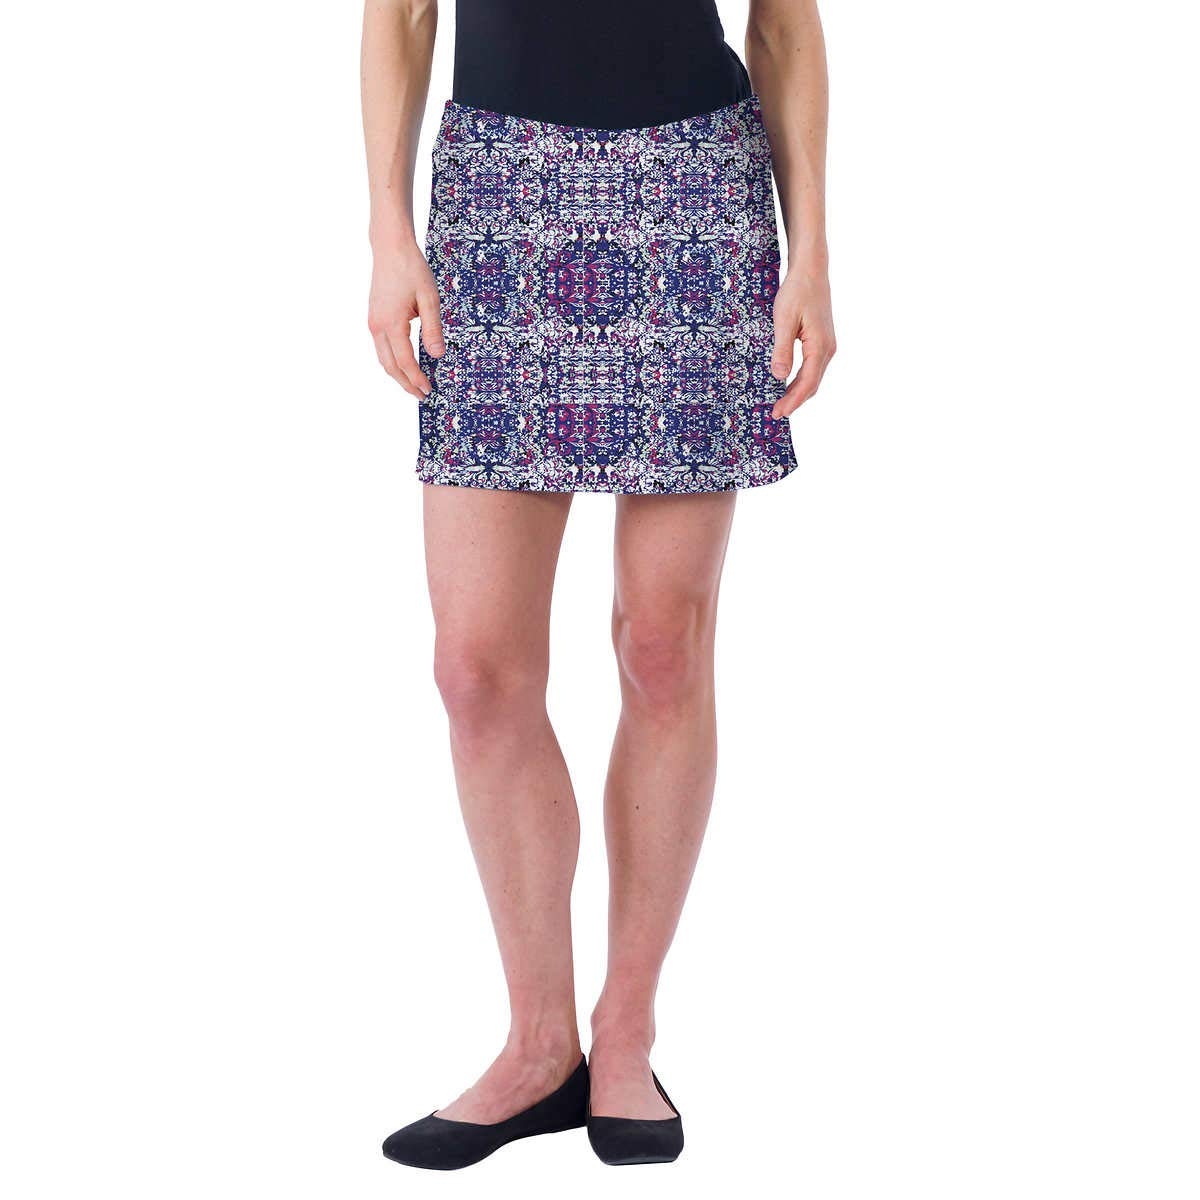 Colorado Clothing Women's Everyday Skort (Blue Tapestry, XX-Large) by Colorado Clothing